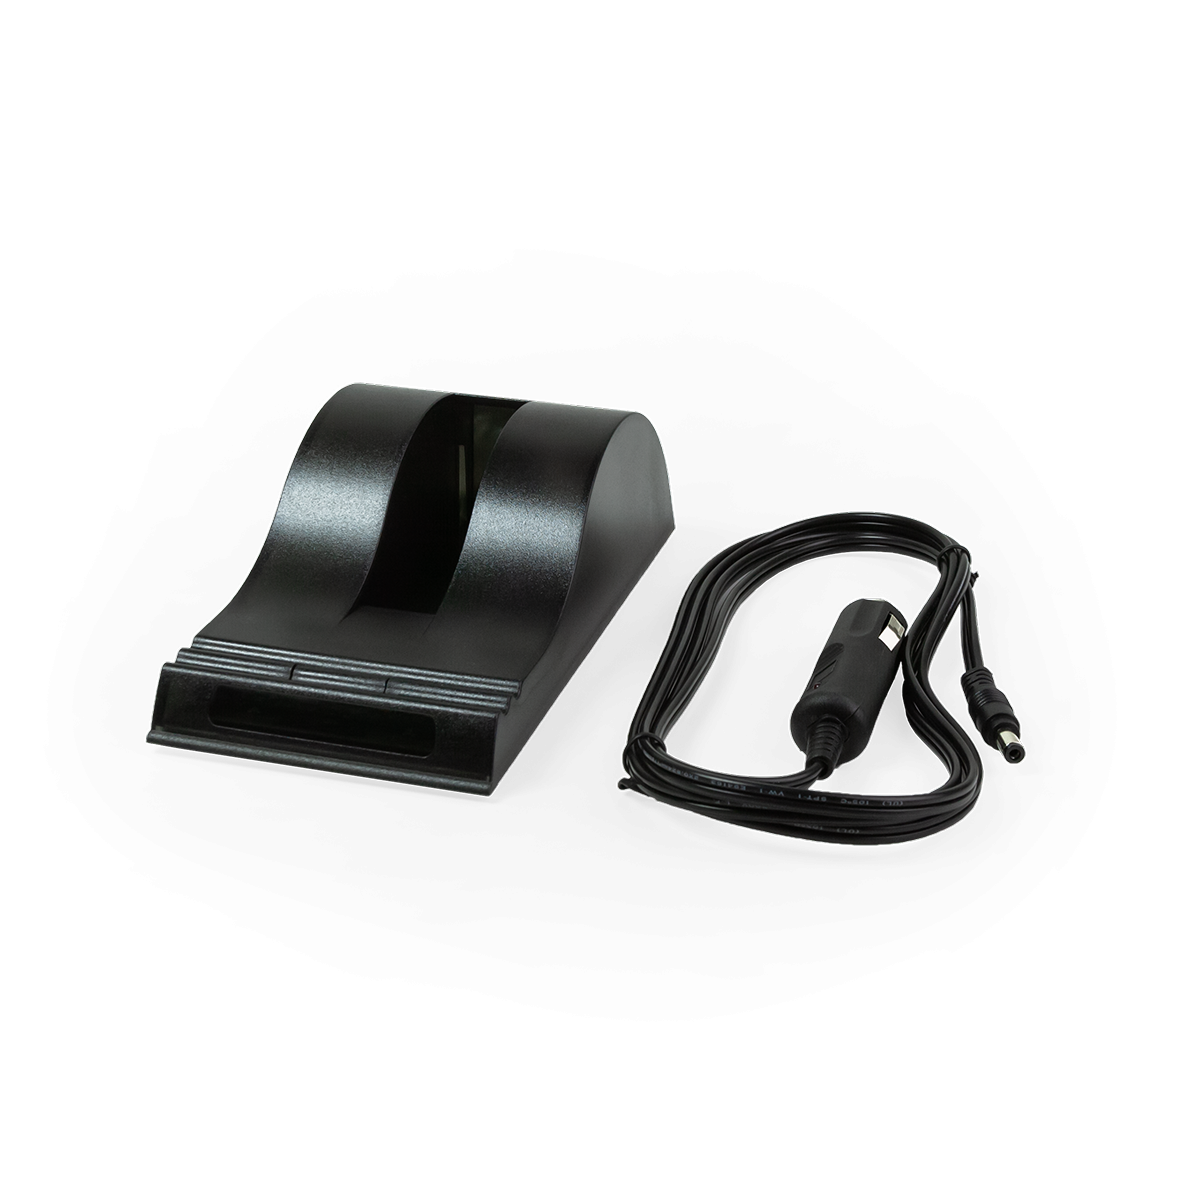 Espire Battery Car Charger